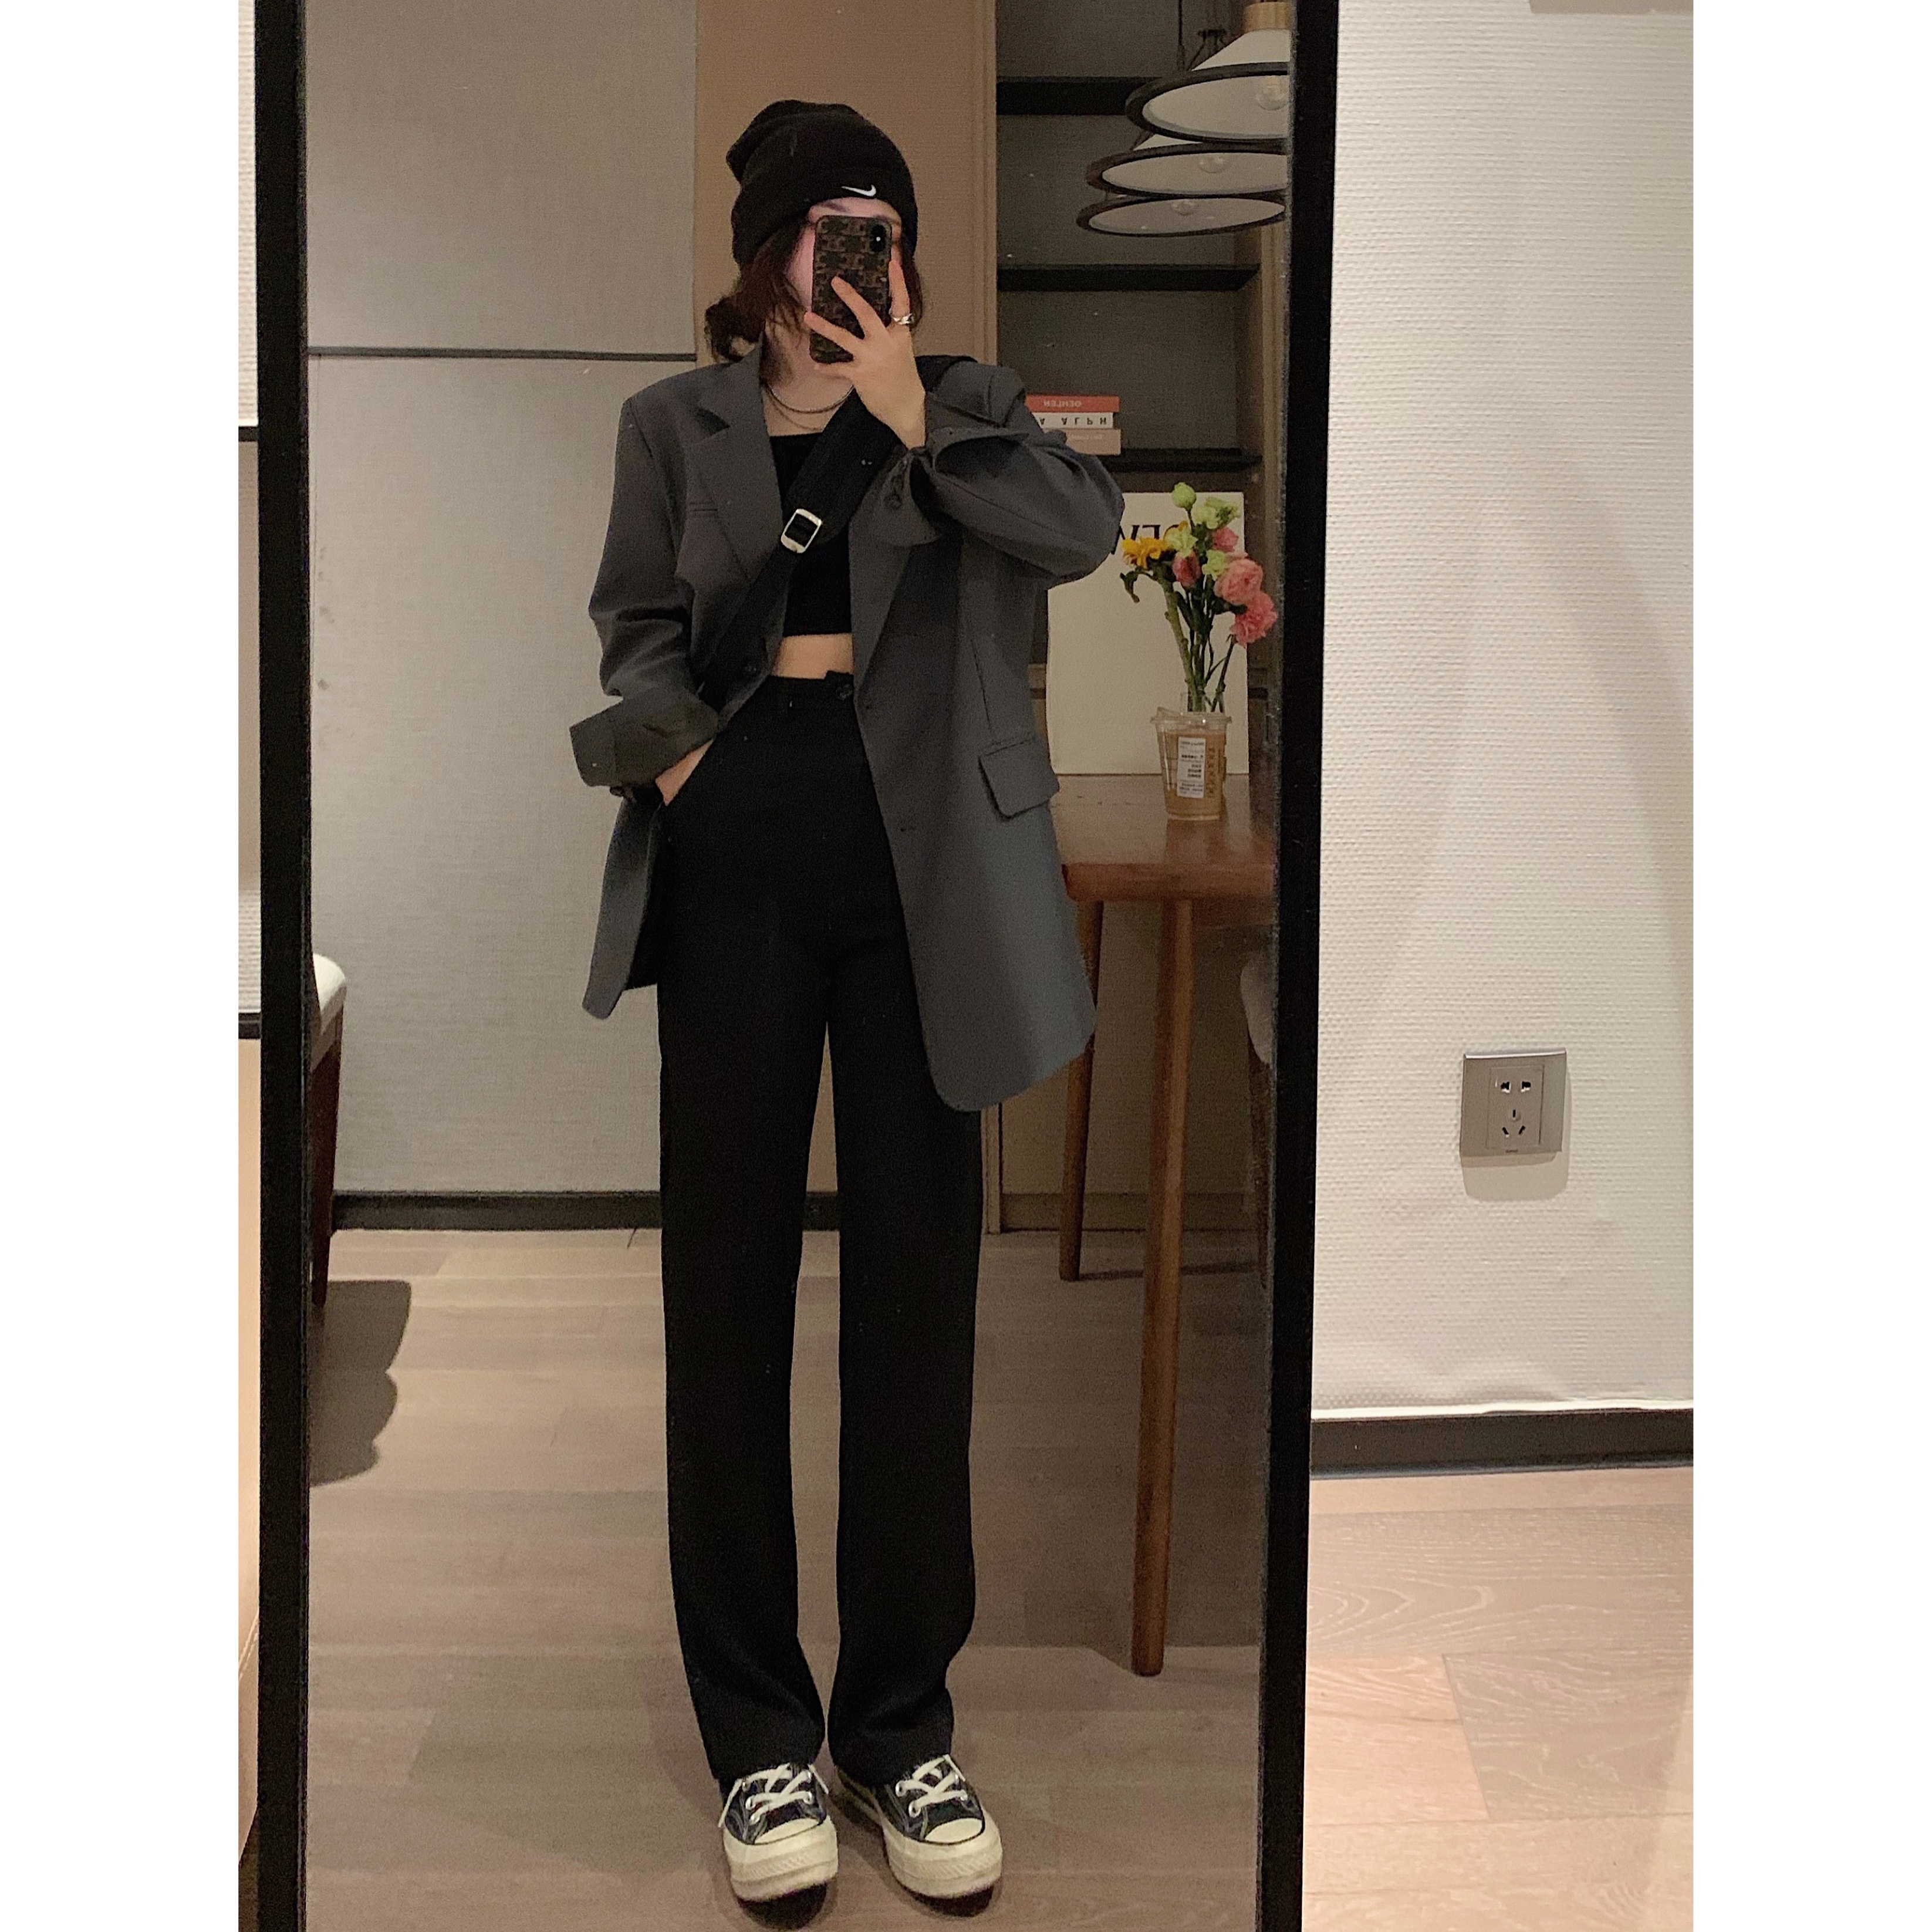 VEEE life suit 2021 spring new shape fashionable thin loose three-color suit jacket